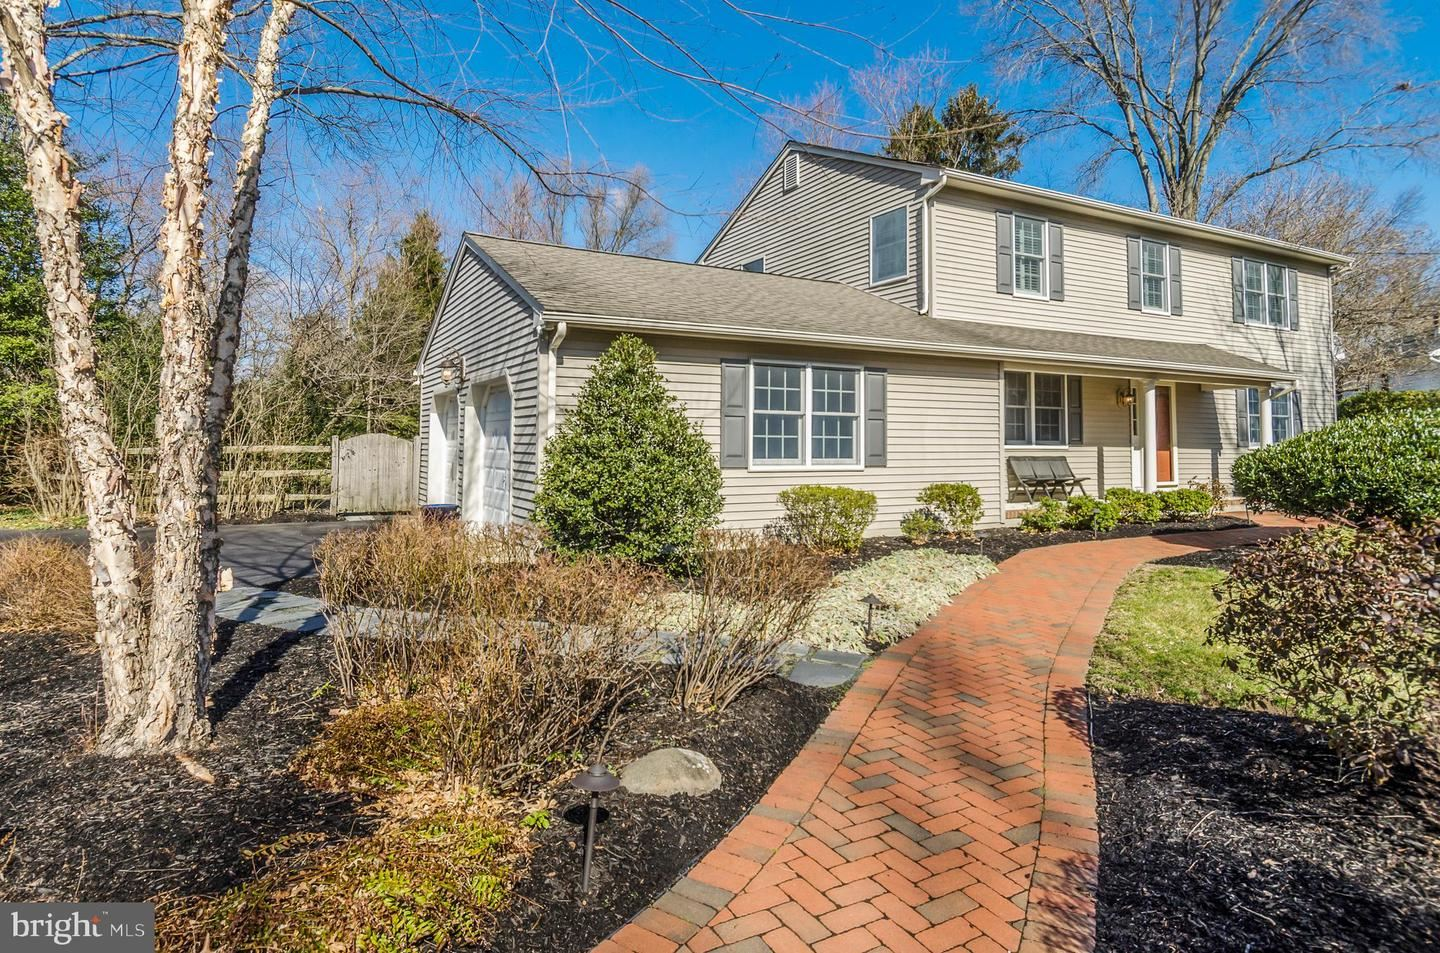 50 VAN WYCK DR, Princeton Junction, NJ 08550 - #: NJME292532